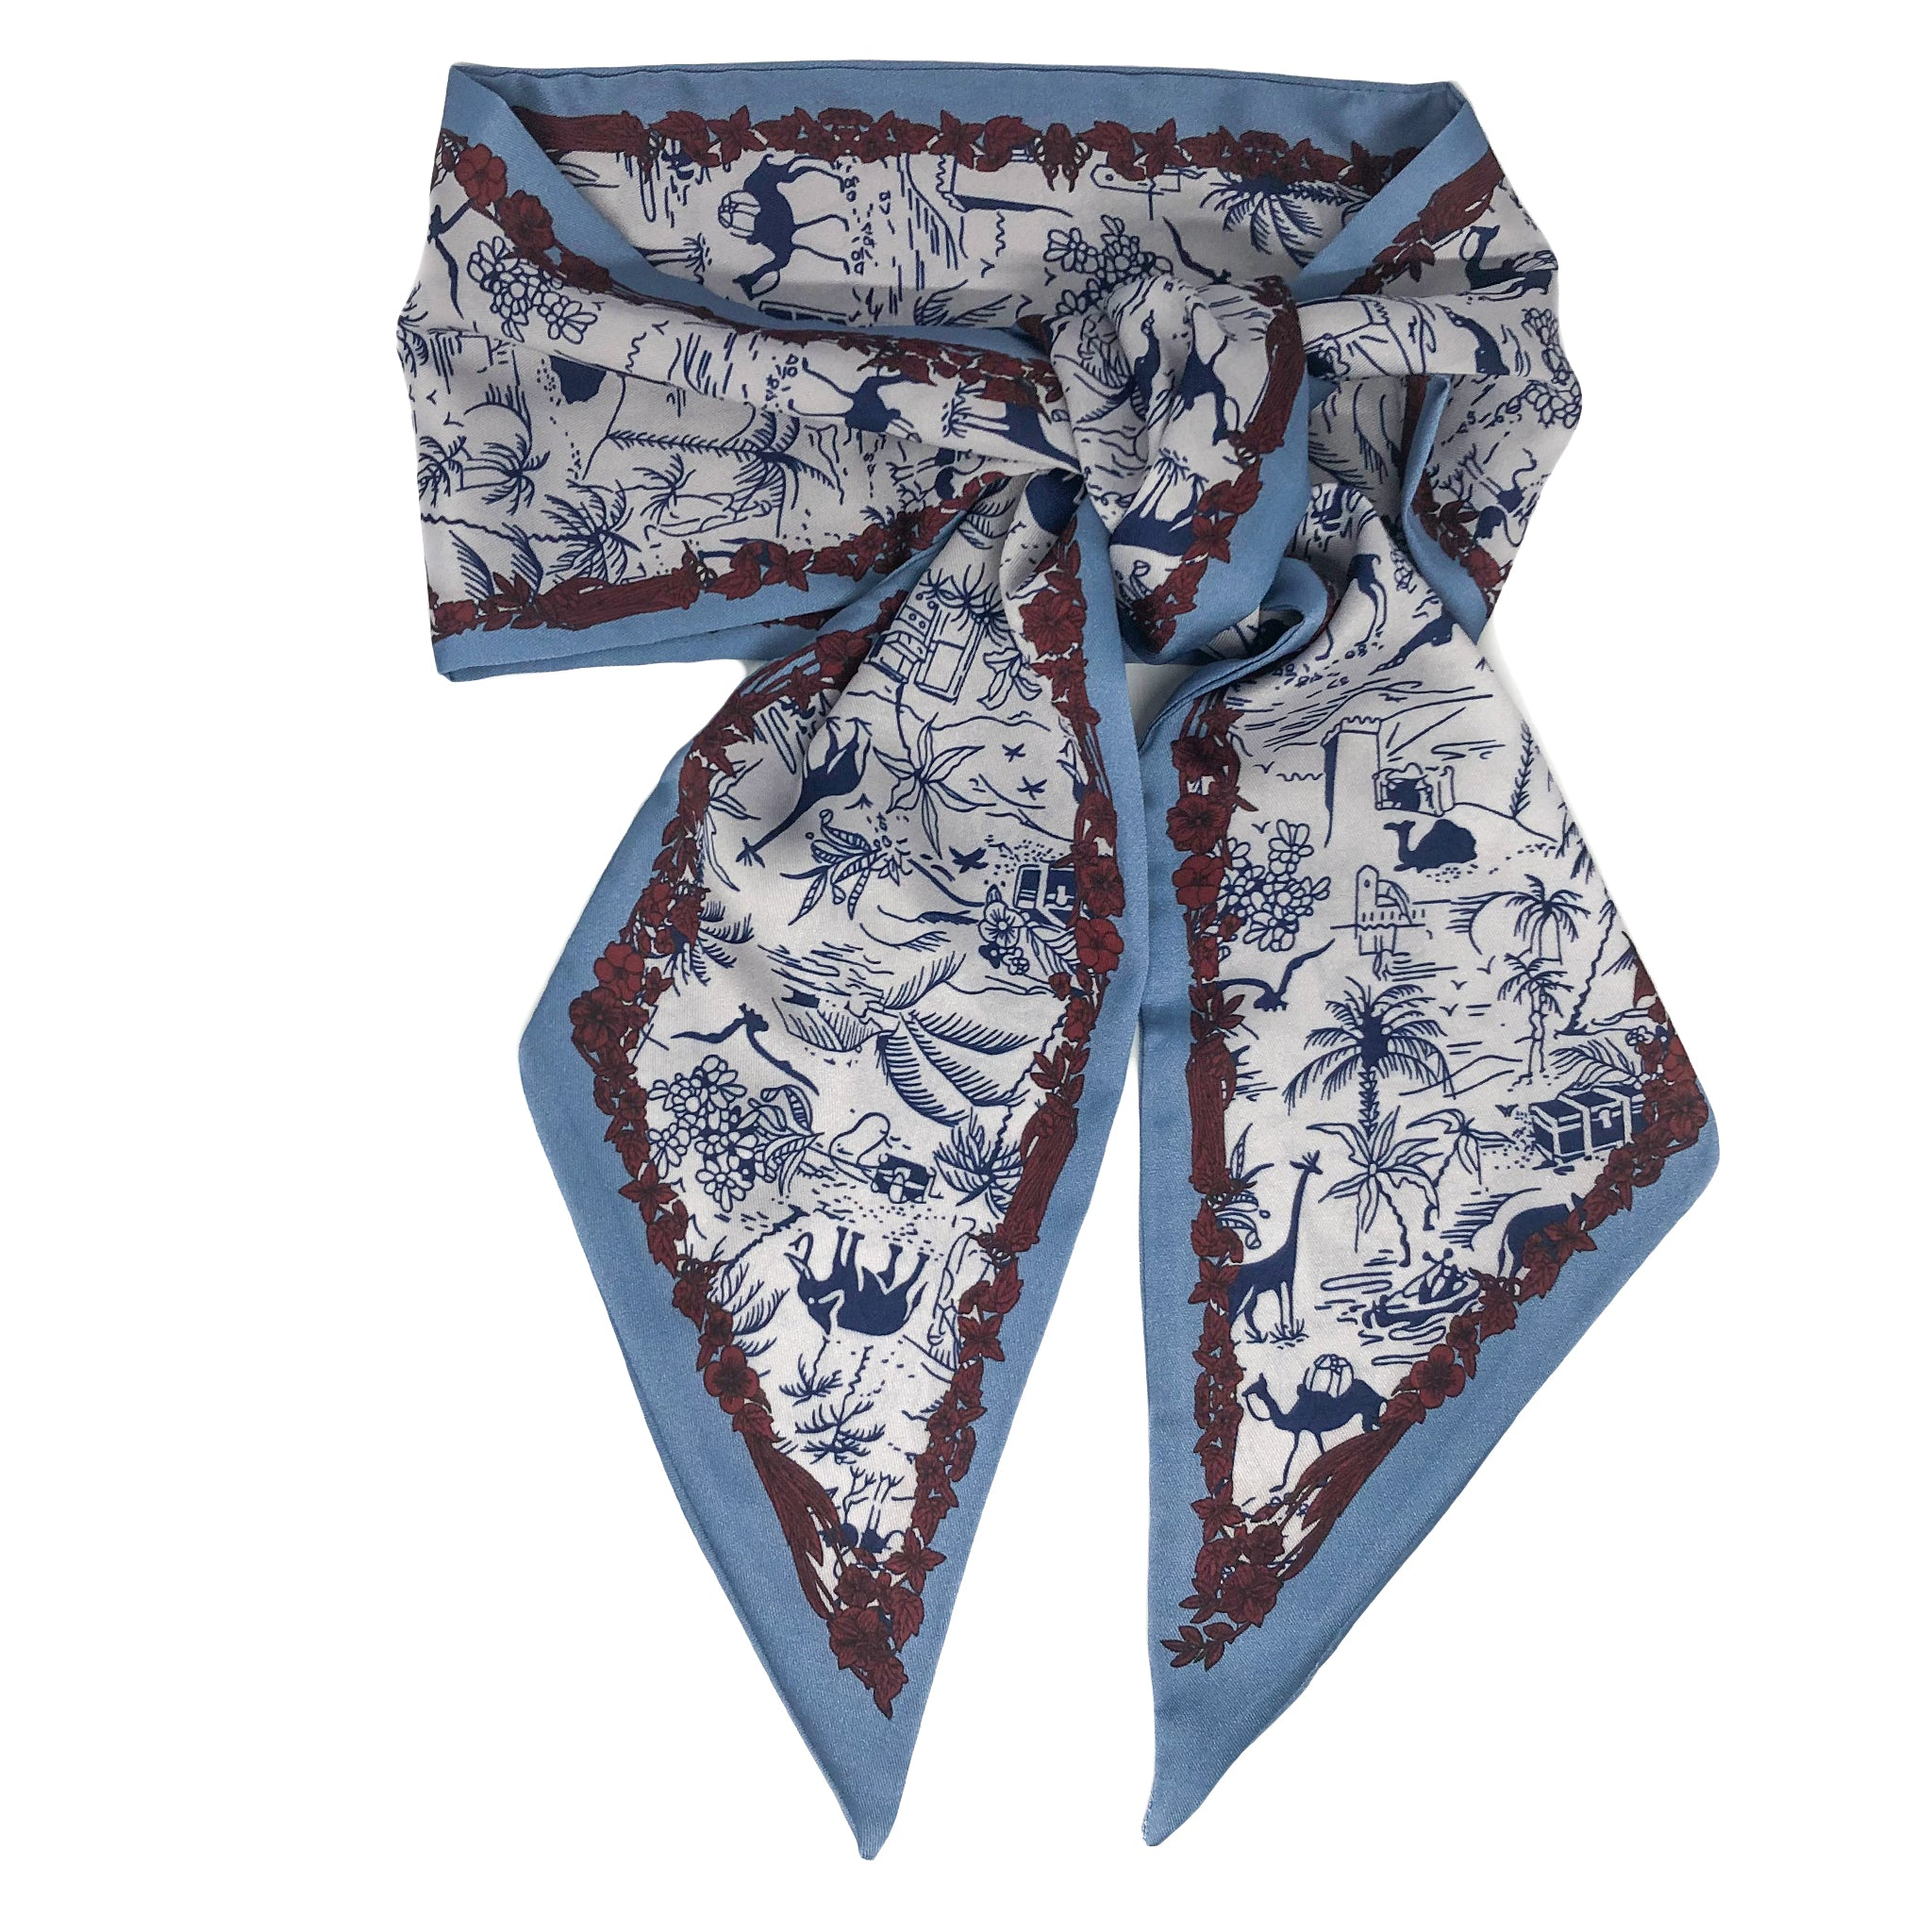 Herricks neck scarf. This elegant neck scarf is just perfect to add a touch of difference to your outfit. Lightweight and silky smooth it has a silver background with navy jungle animal design and a gorgeous tropical floral border in burgundy finished with a plain blue edge.   Measures L 134 cm x W 13 cm